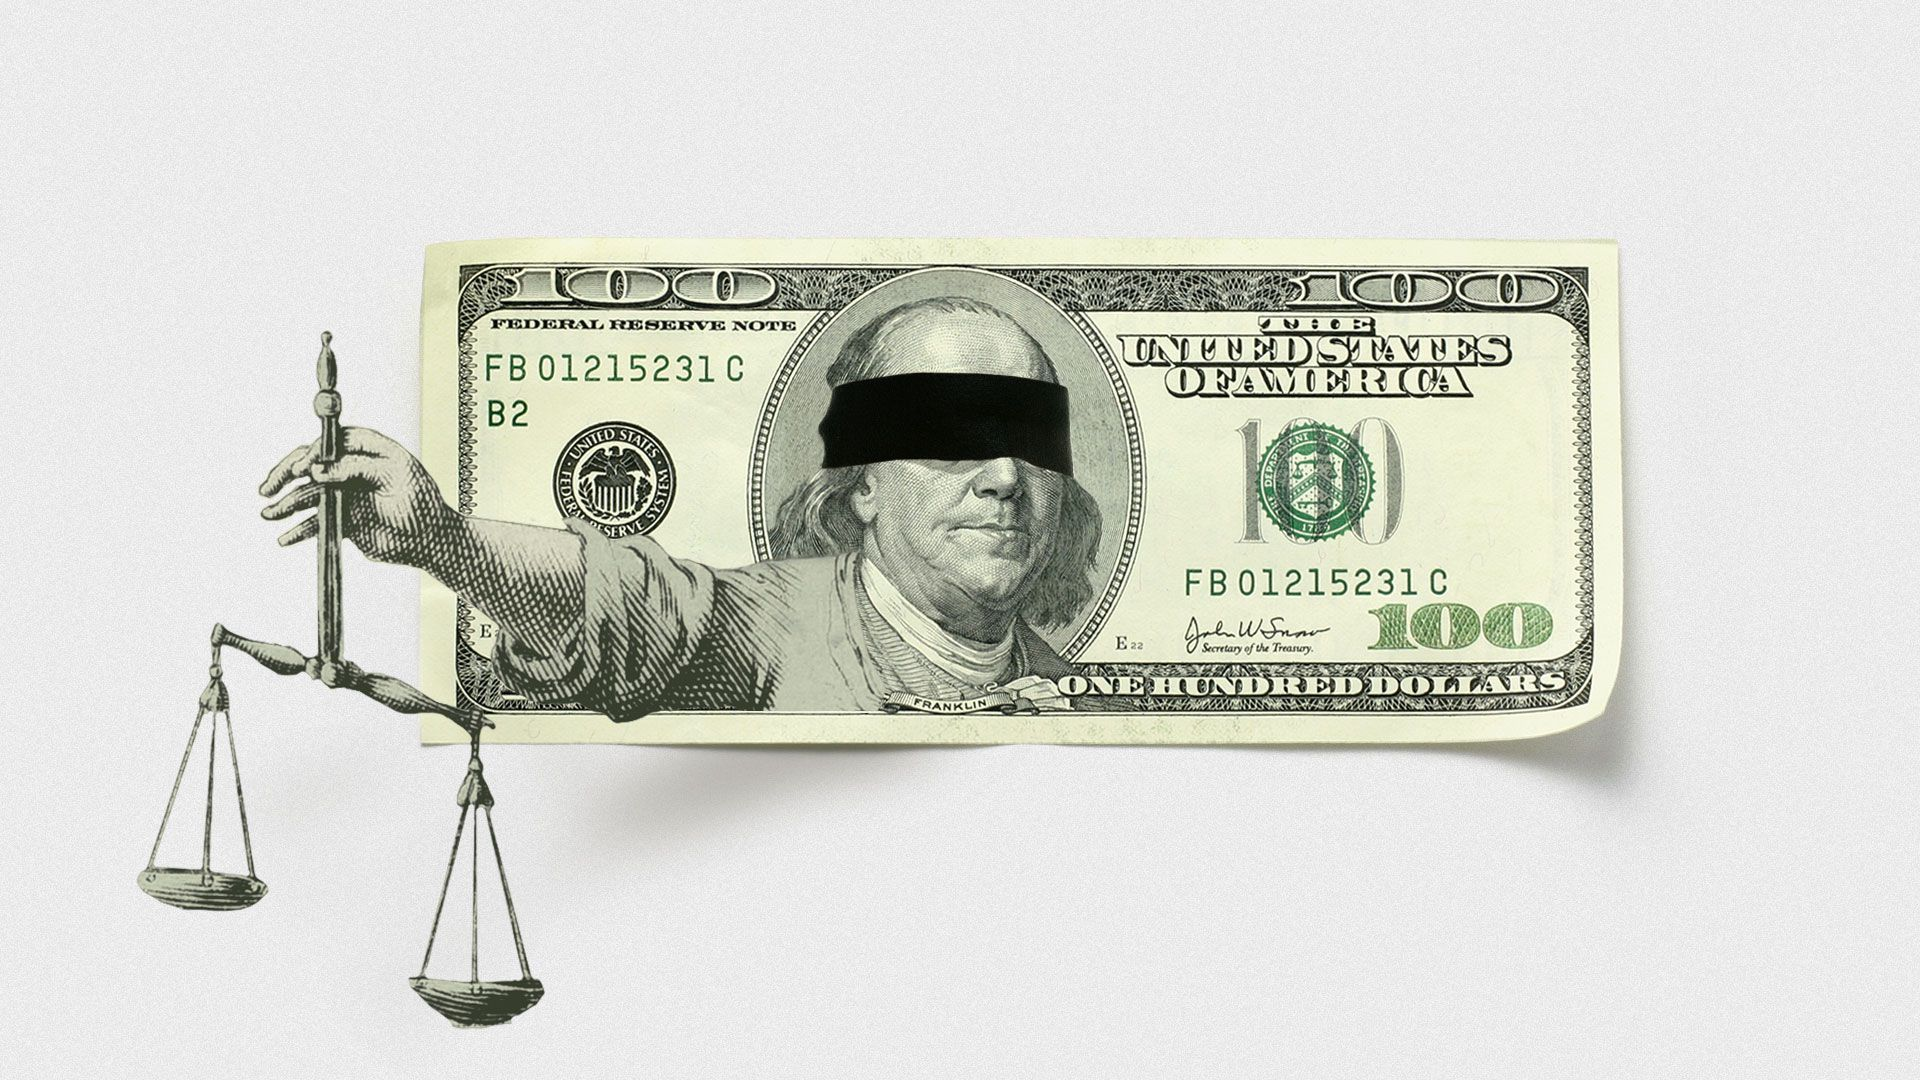 Illustration of a one hundred dollar bill with Benjamin Franklin blindfolded holding out the scales of justice.